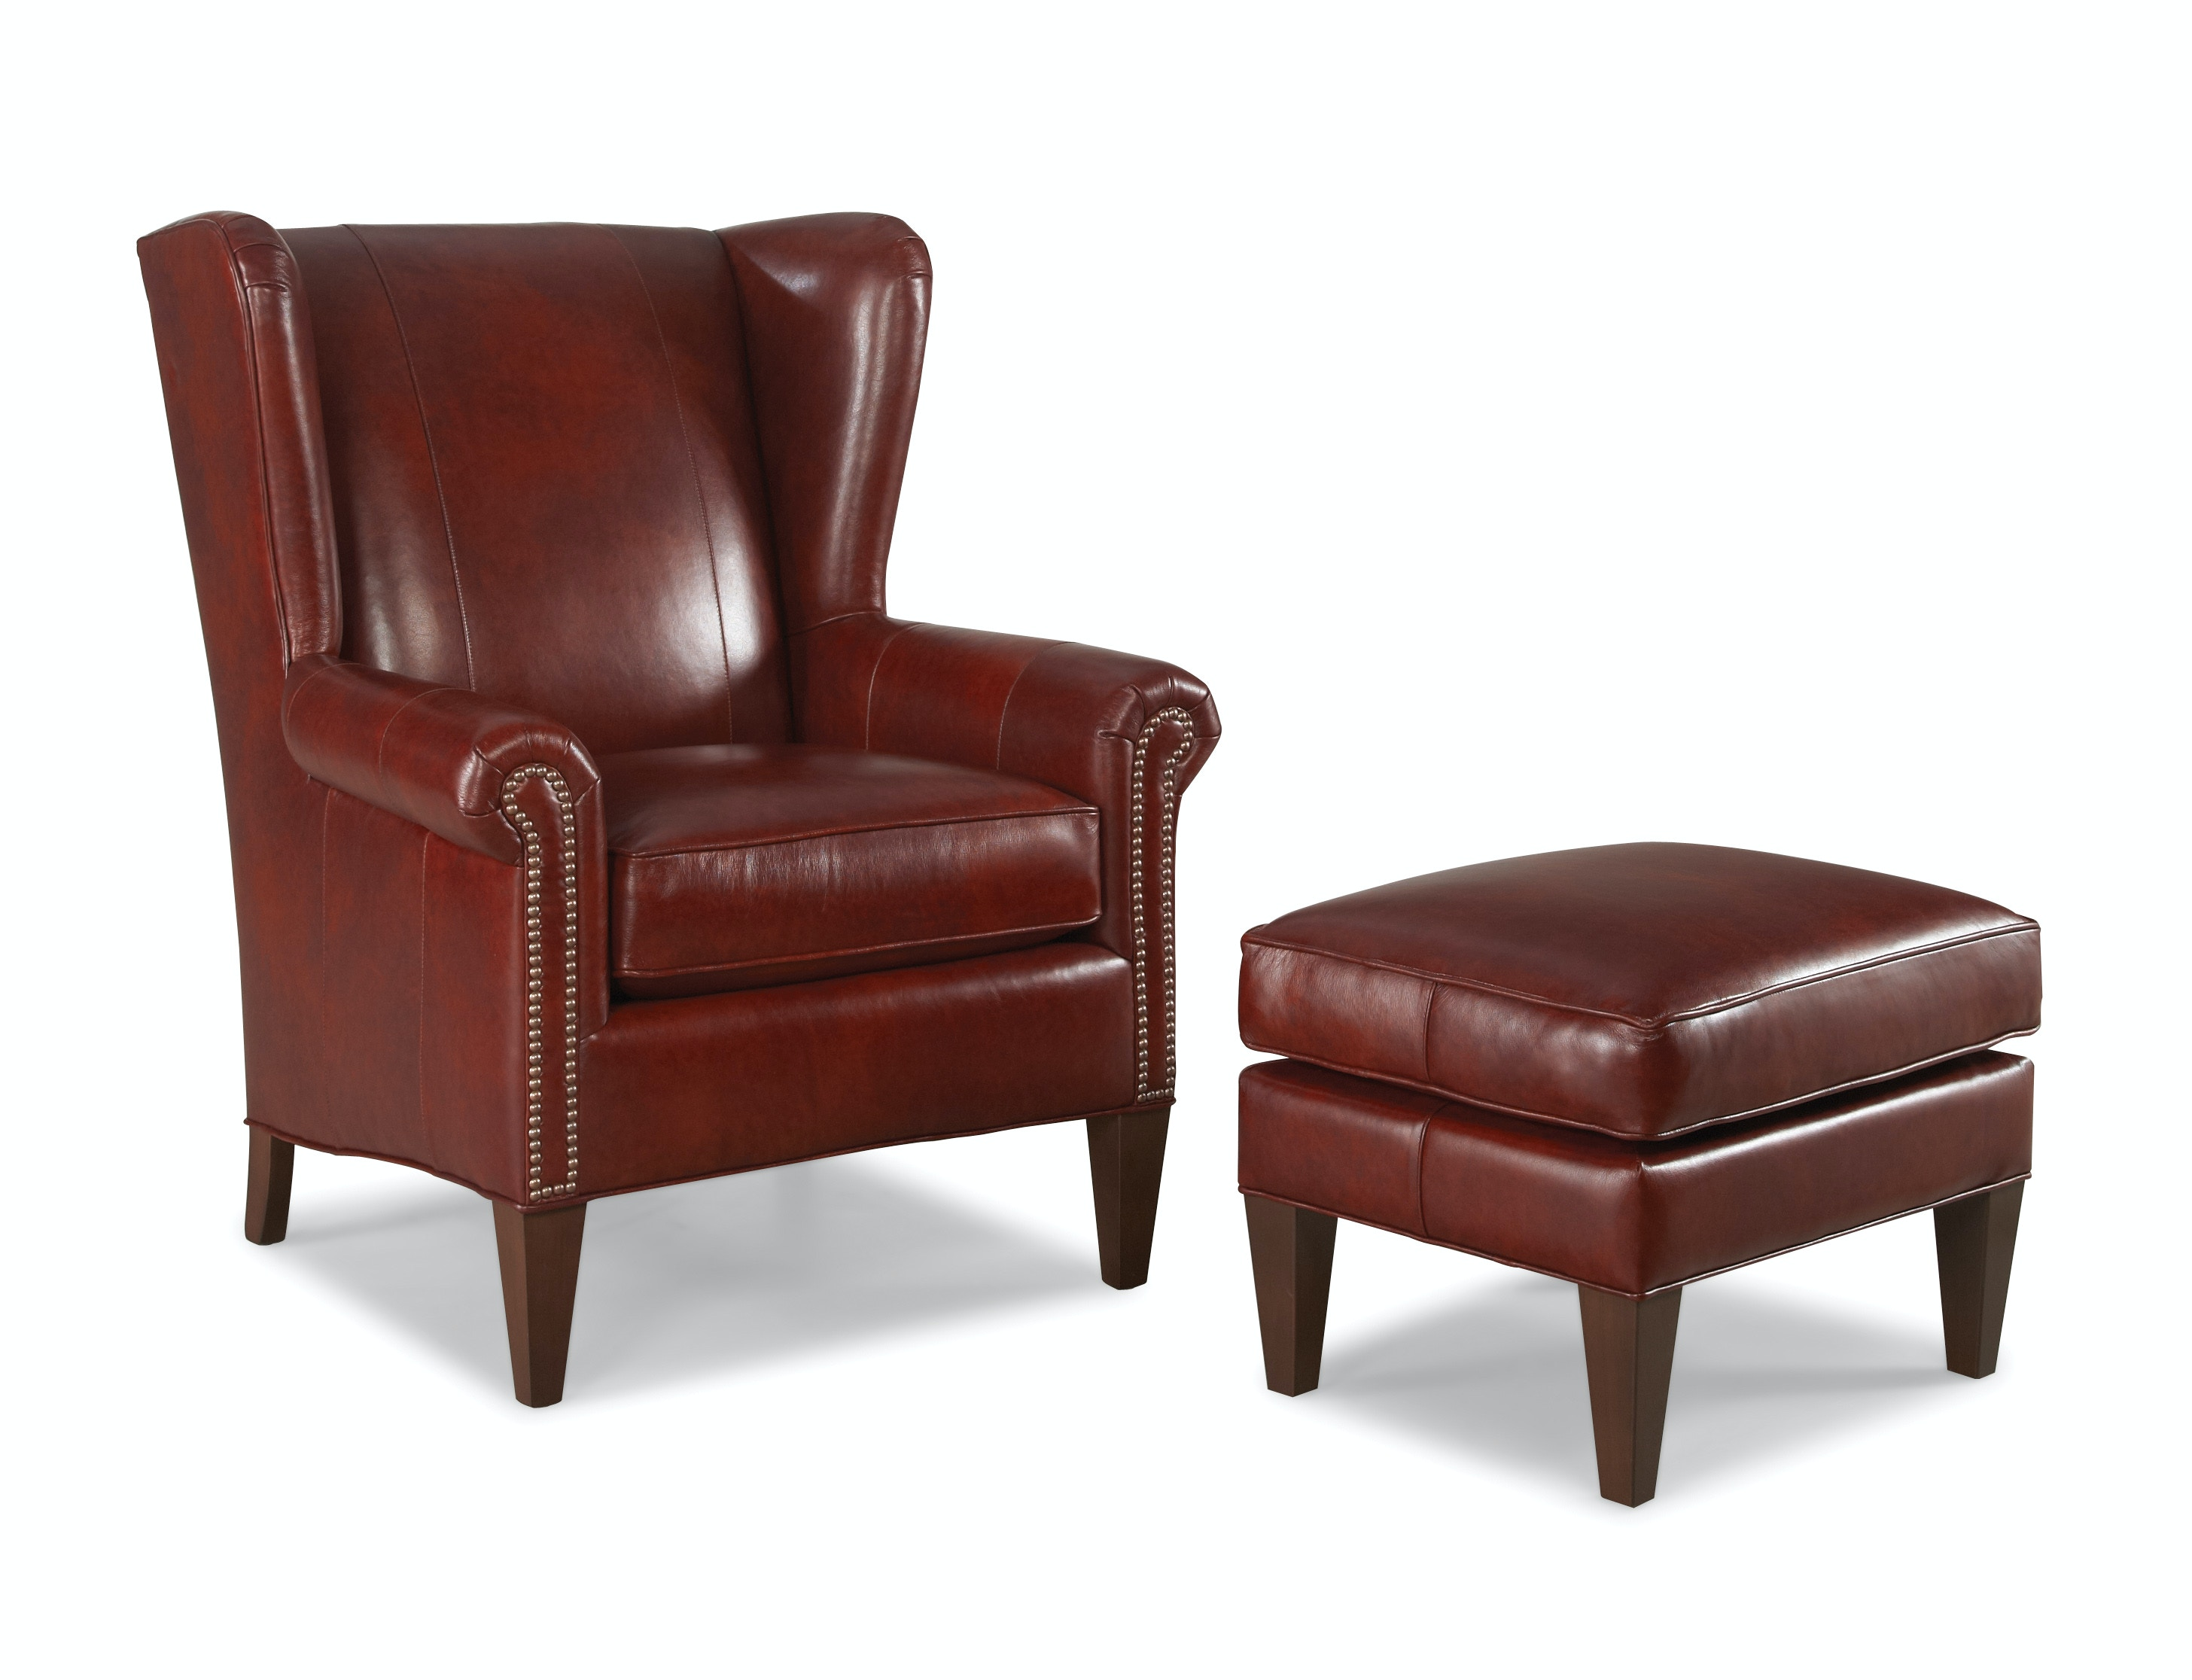 Charmant Smith Brothers Bailey Wing Chair 542829